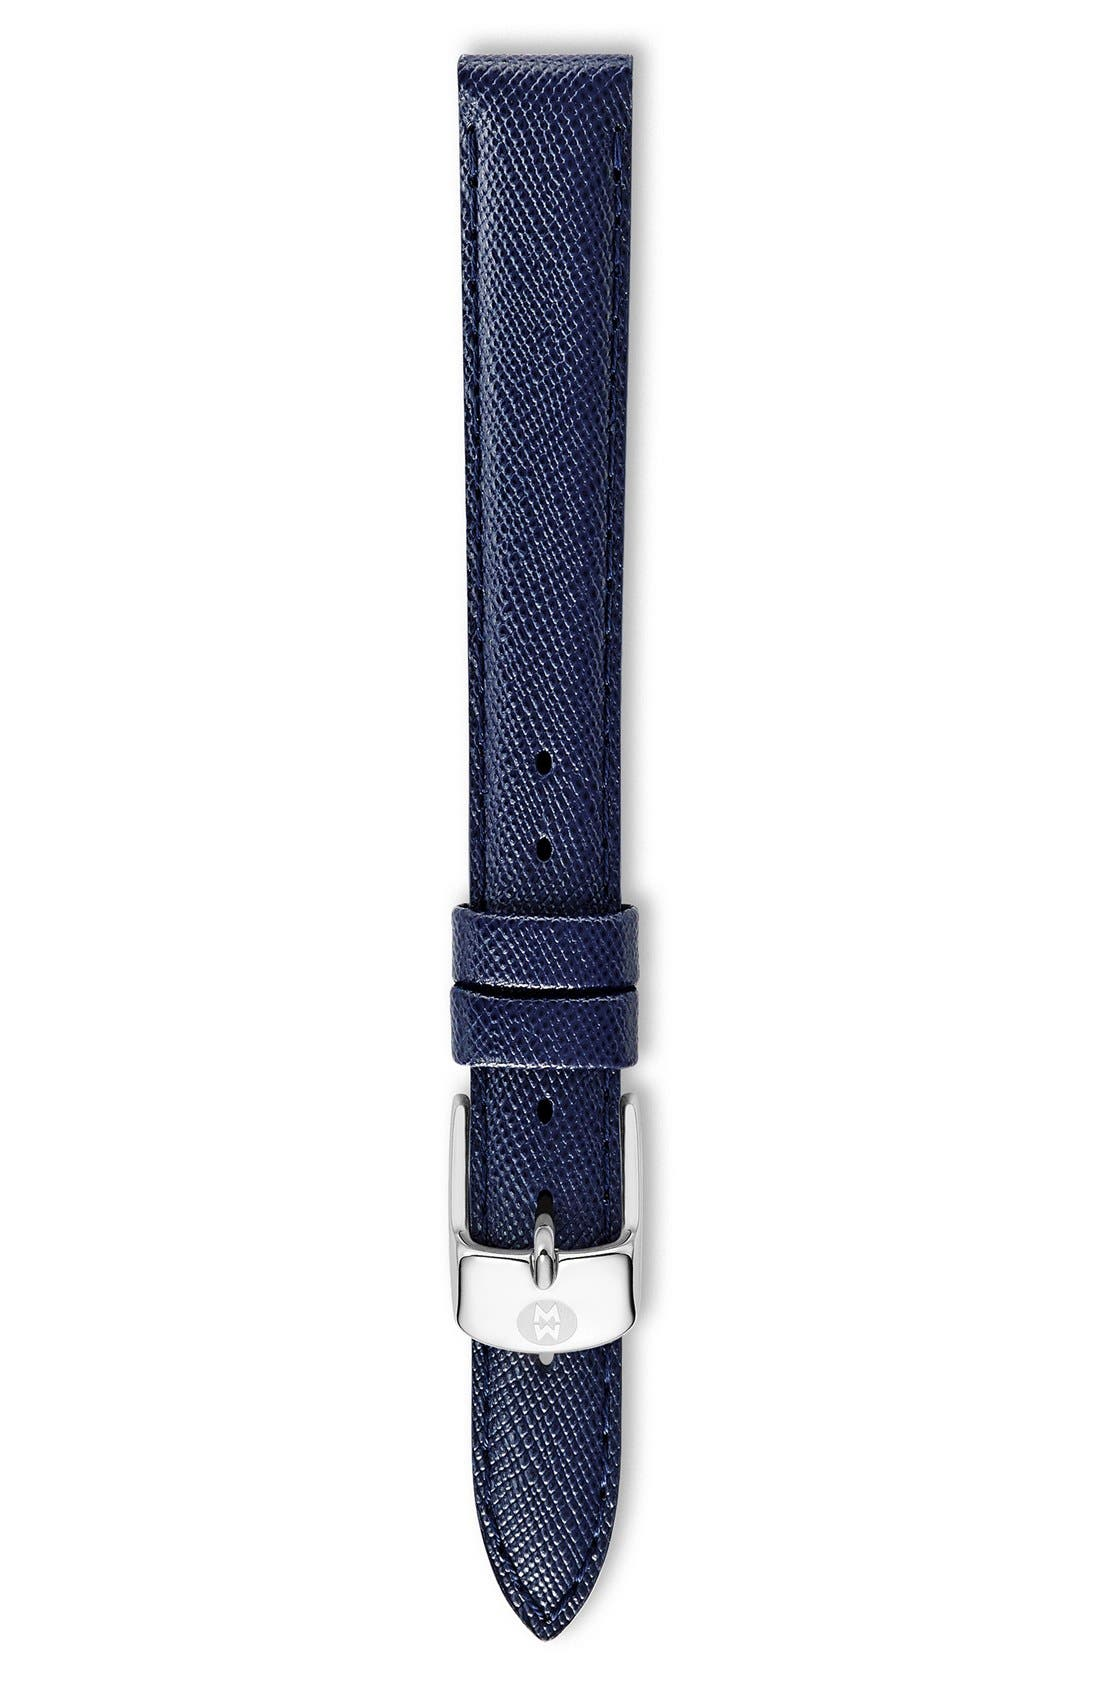 MICHELE 12mm Saffiano Leather Watch Strap